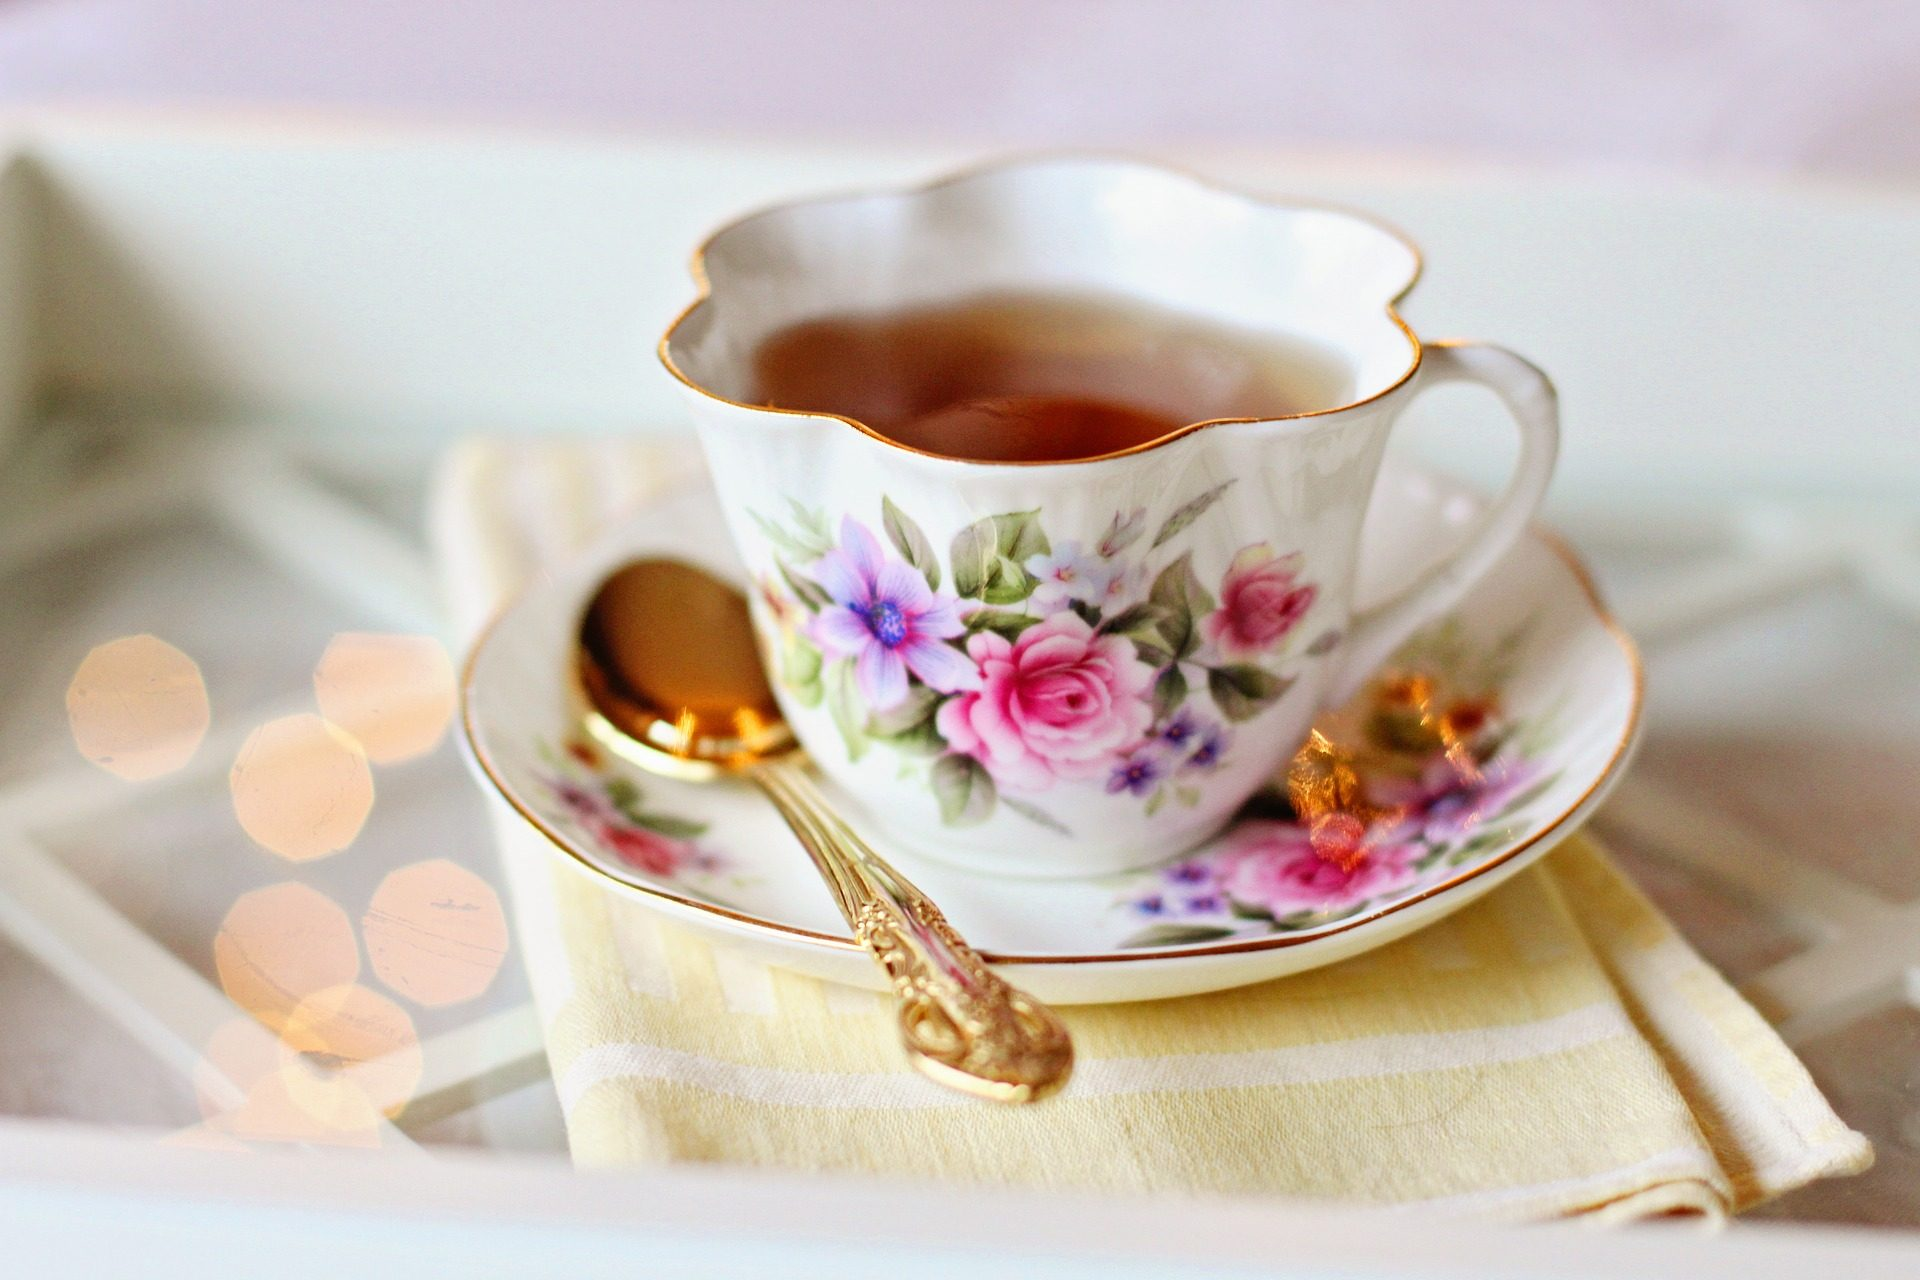 Tea consumption is associated with controlling gene expression